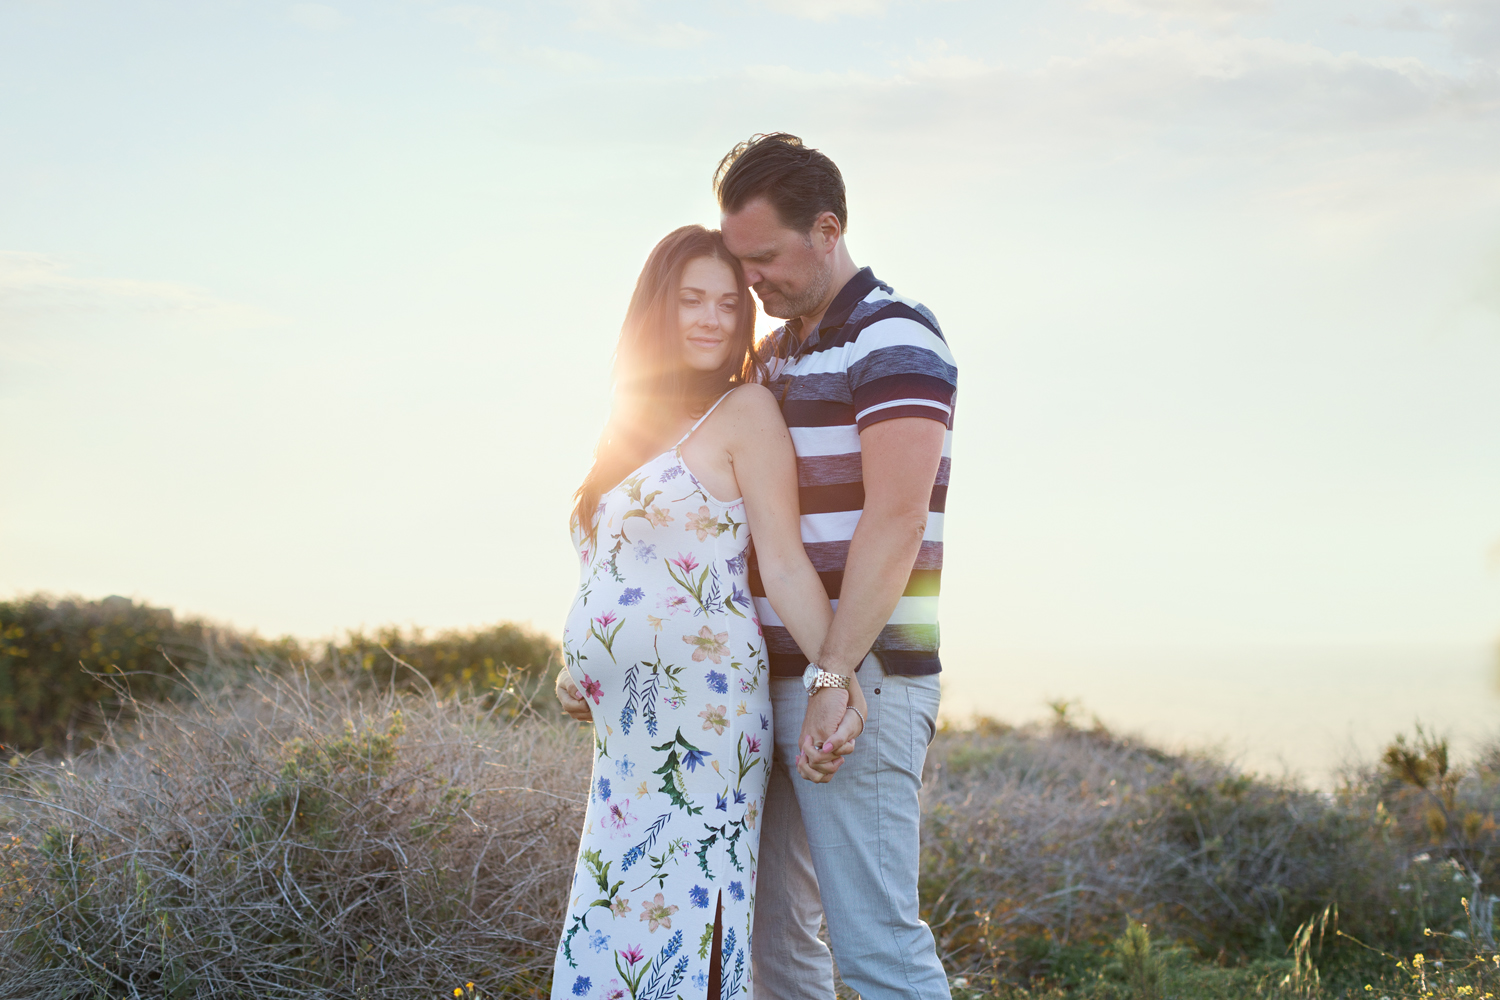 malta maternity photographer golden bay sunset session parents to be happy couple in love dress casual photo shoot golden bay happy expecting dress malta